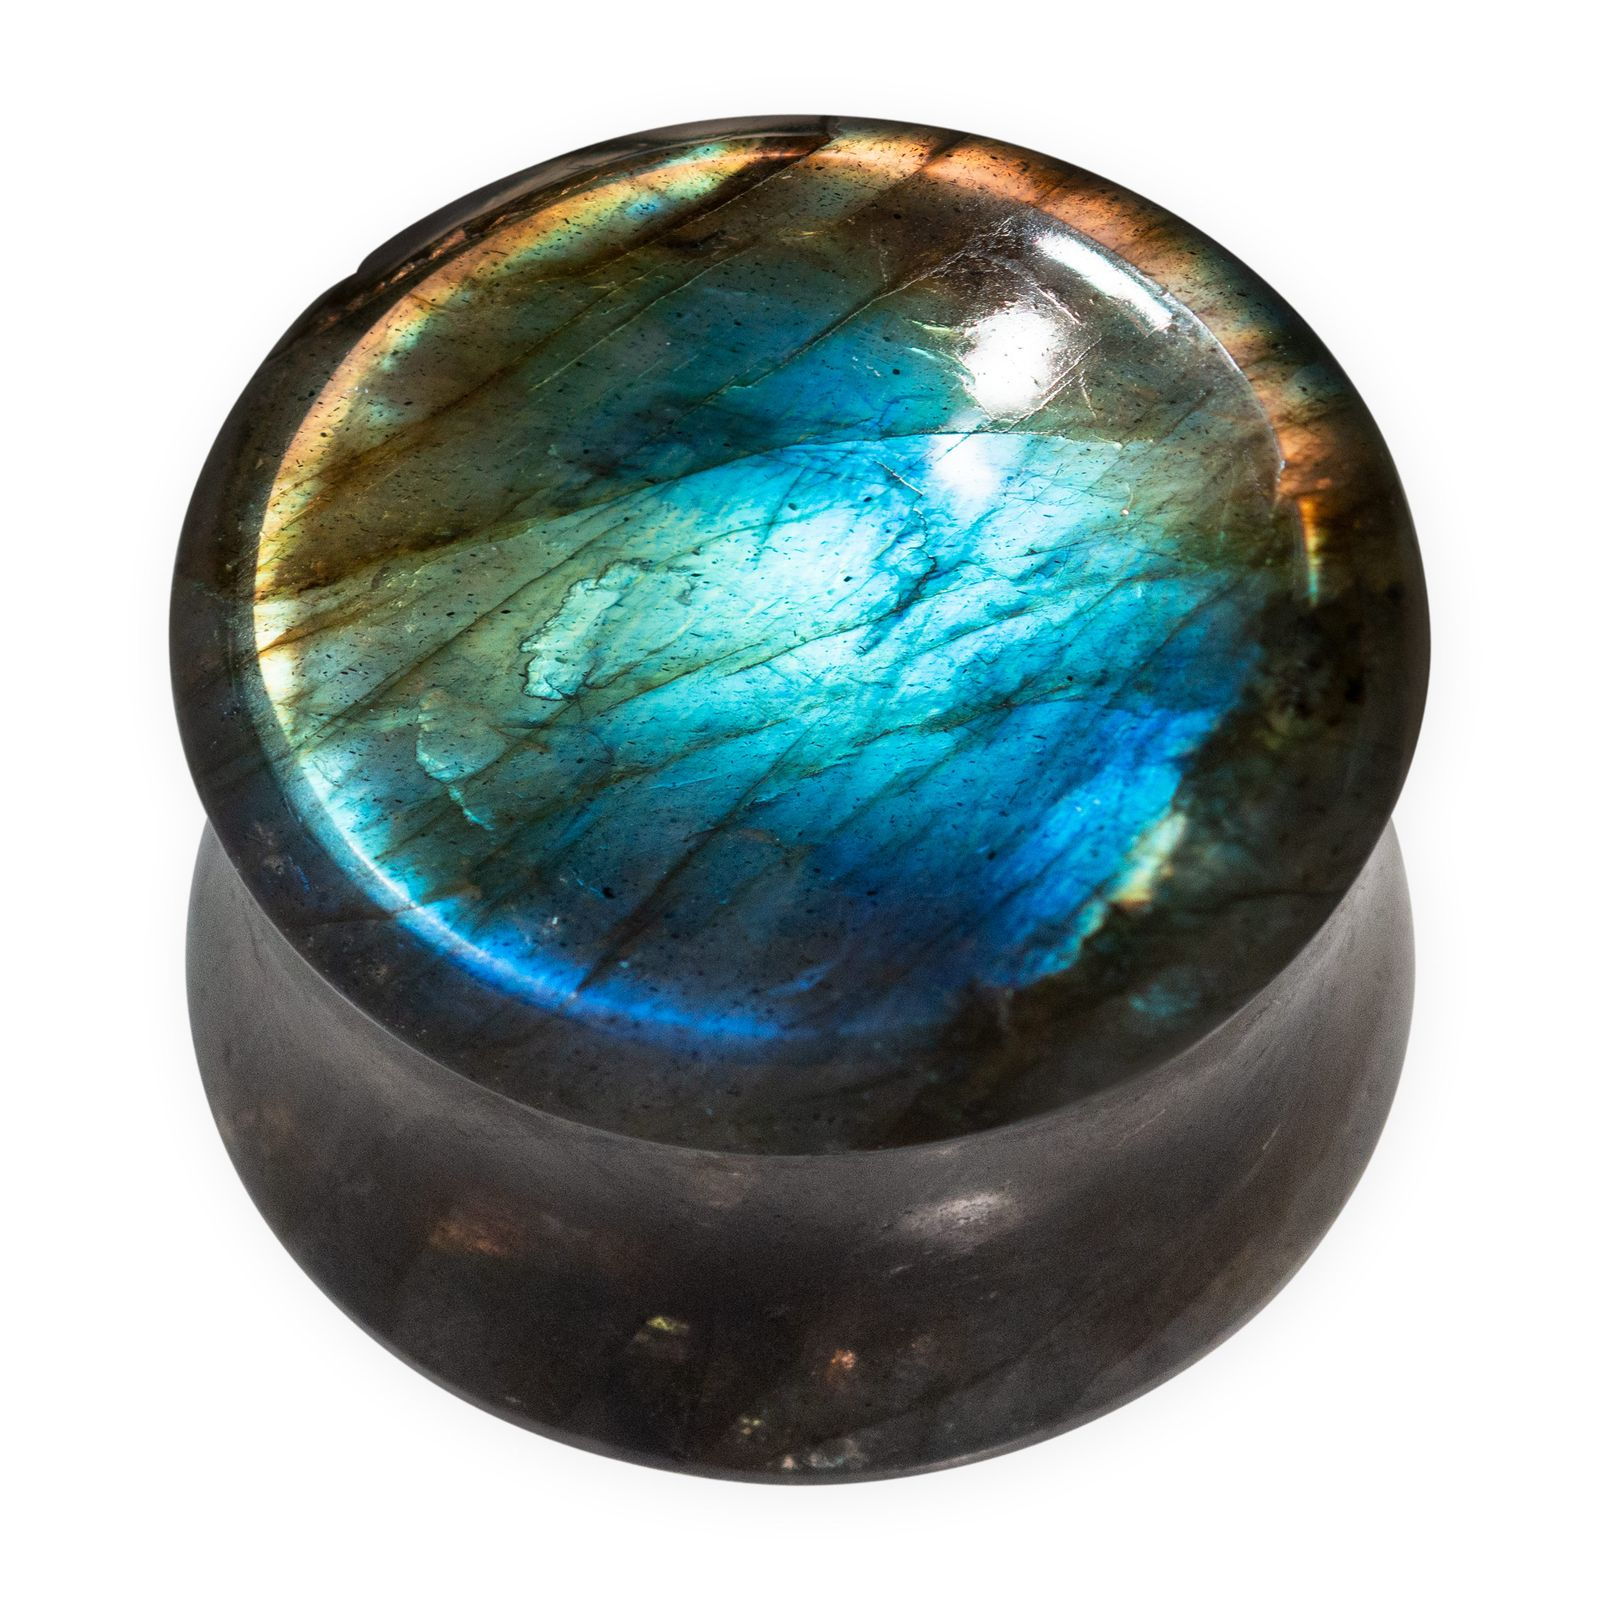 Flesh Plug made of Labradorite - Concave on one side